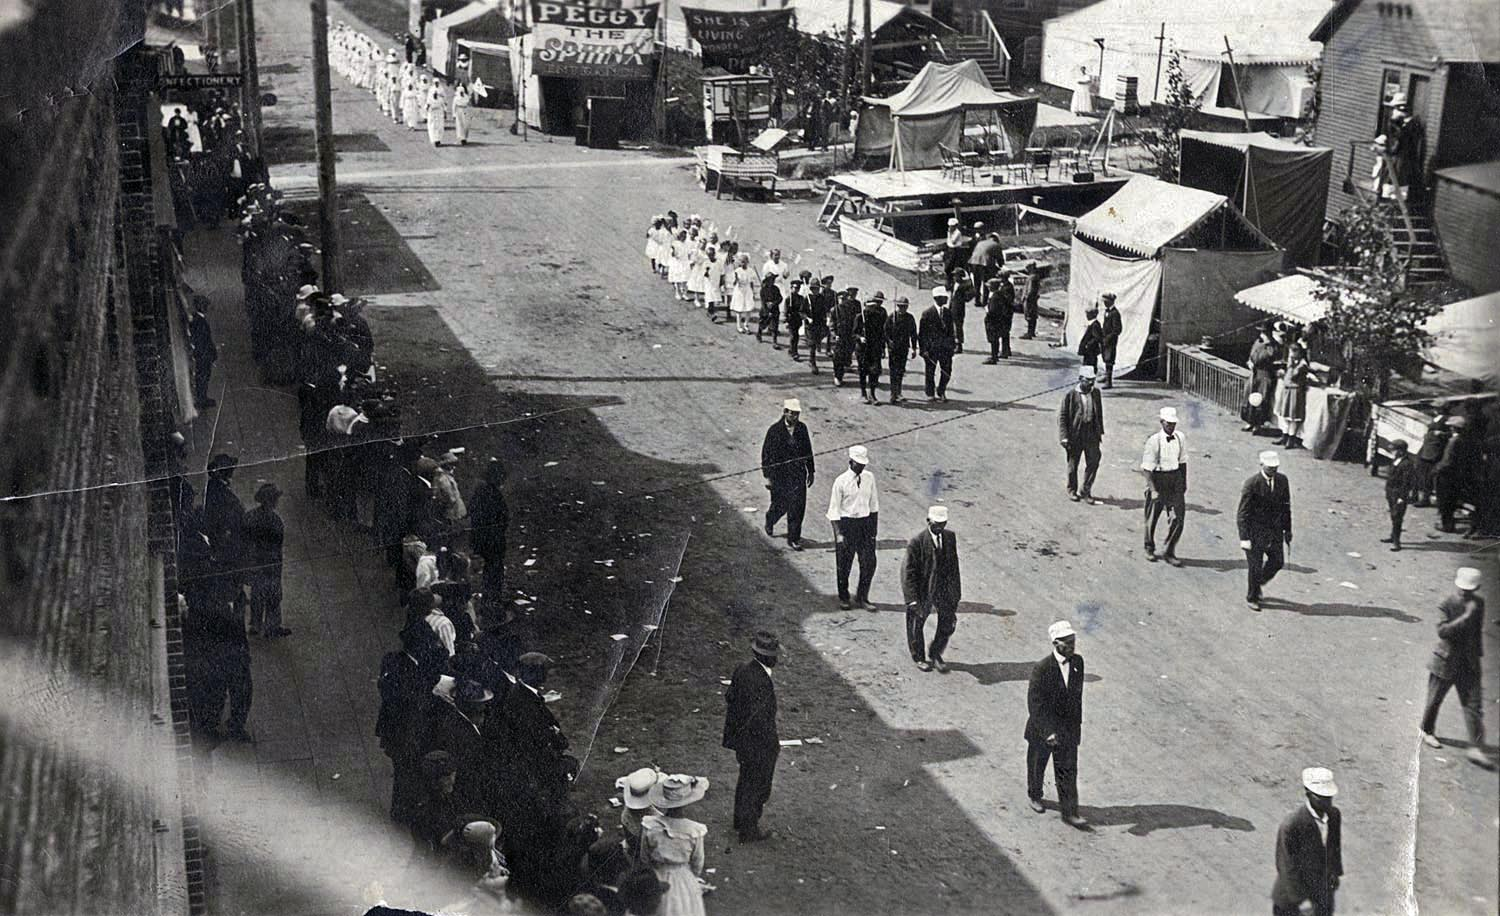 Civic League marching in the Labor Day Parade, September 5, 1917.